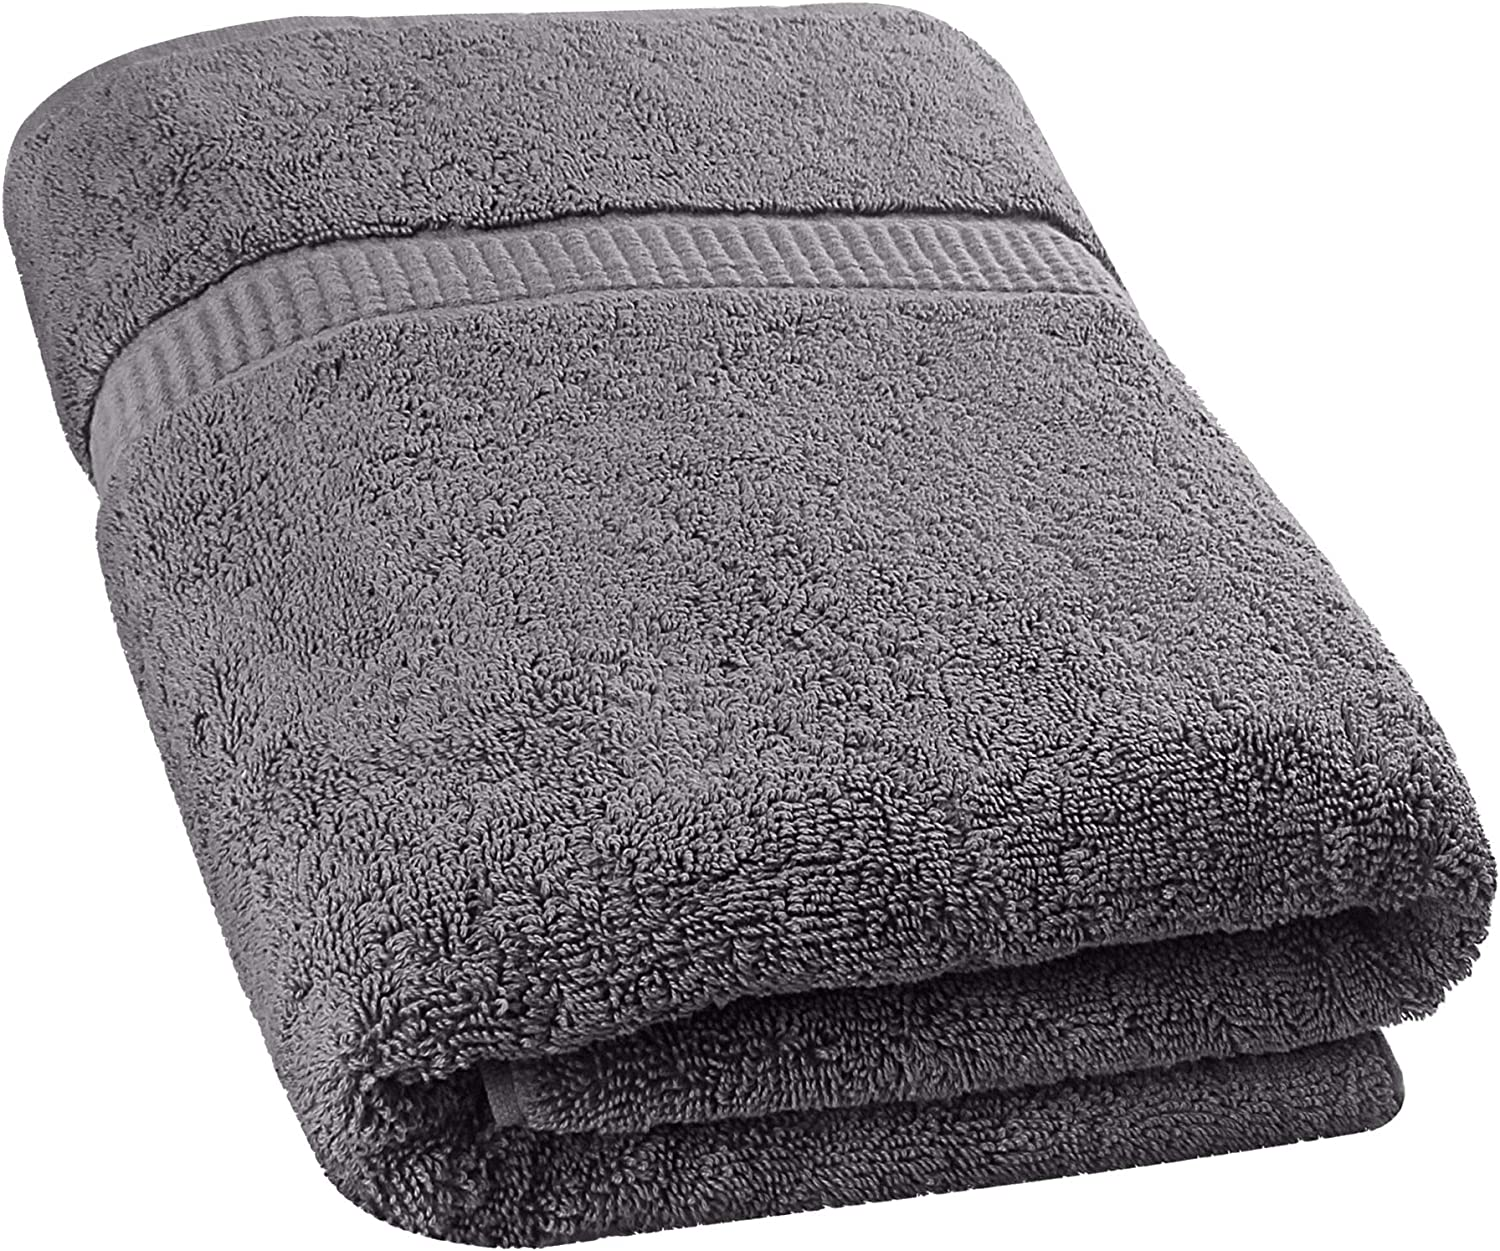 Utopia Towels - Luxurious Jumbo Bath Sheet (35 x 70 Inches, Grey) - 600 GSM 100% Ring Spun Cotton Highly Absorbent and Quick Dry Extra Large Bath Towel - Super Soft Hotel Quality Towel (2-Pack): Home & Kitchen